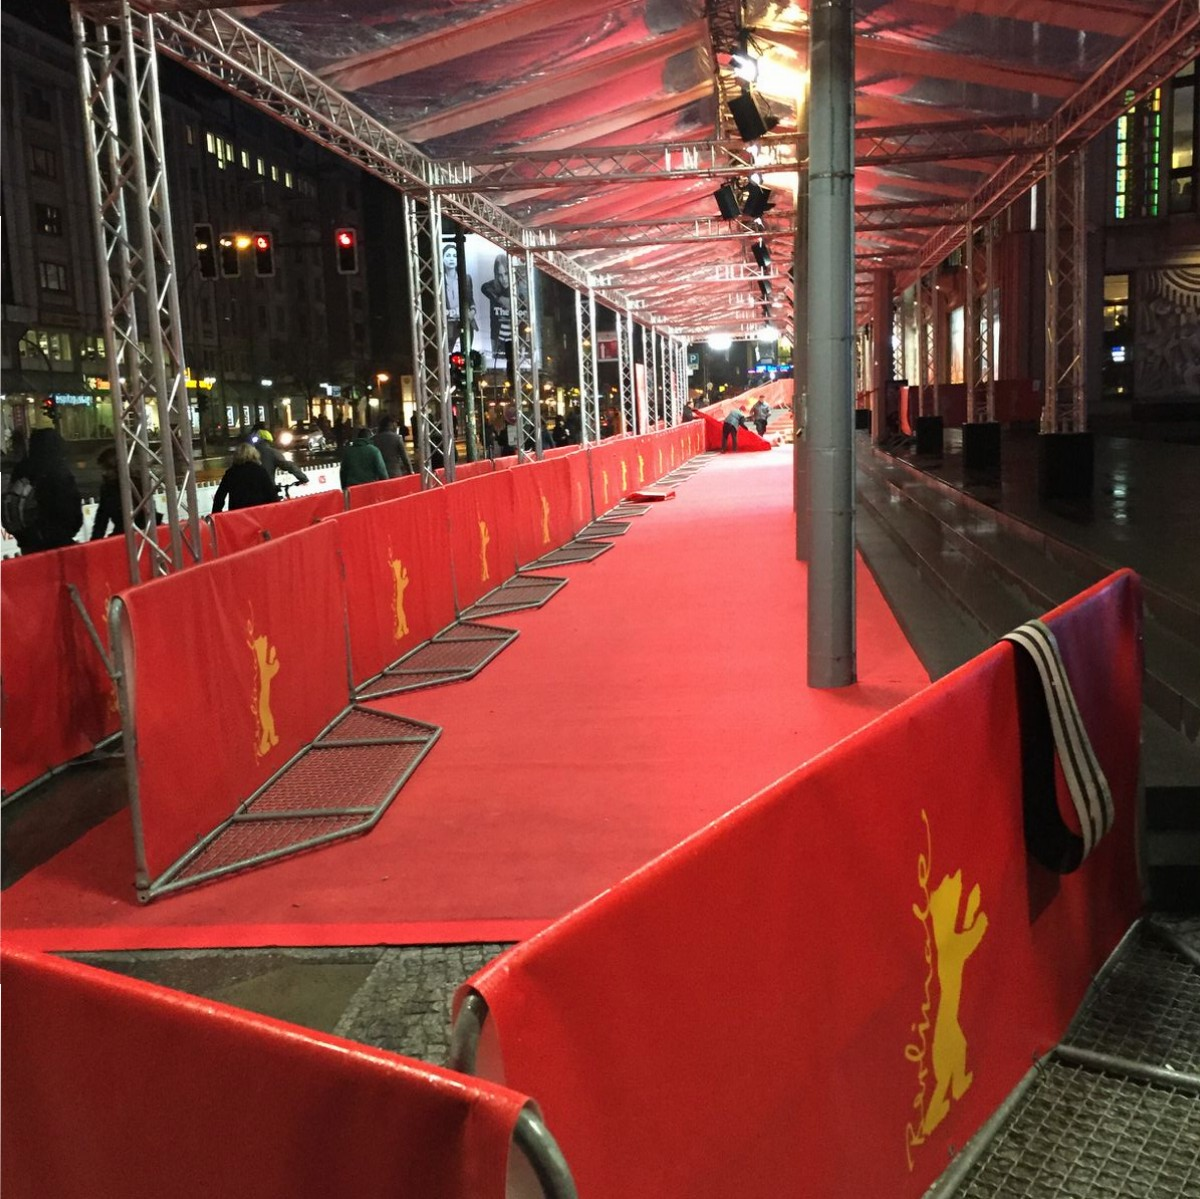 Berlin, Berlinale, Friedrichstadtpalast, Red Carpet